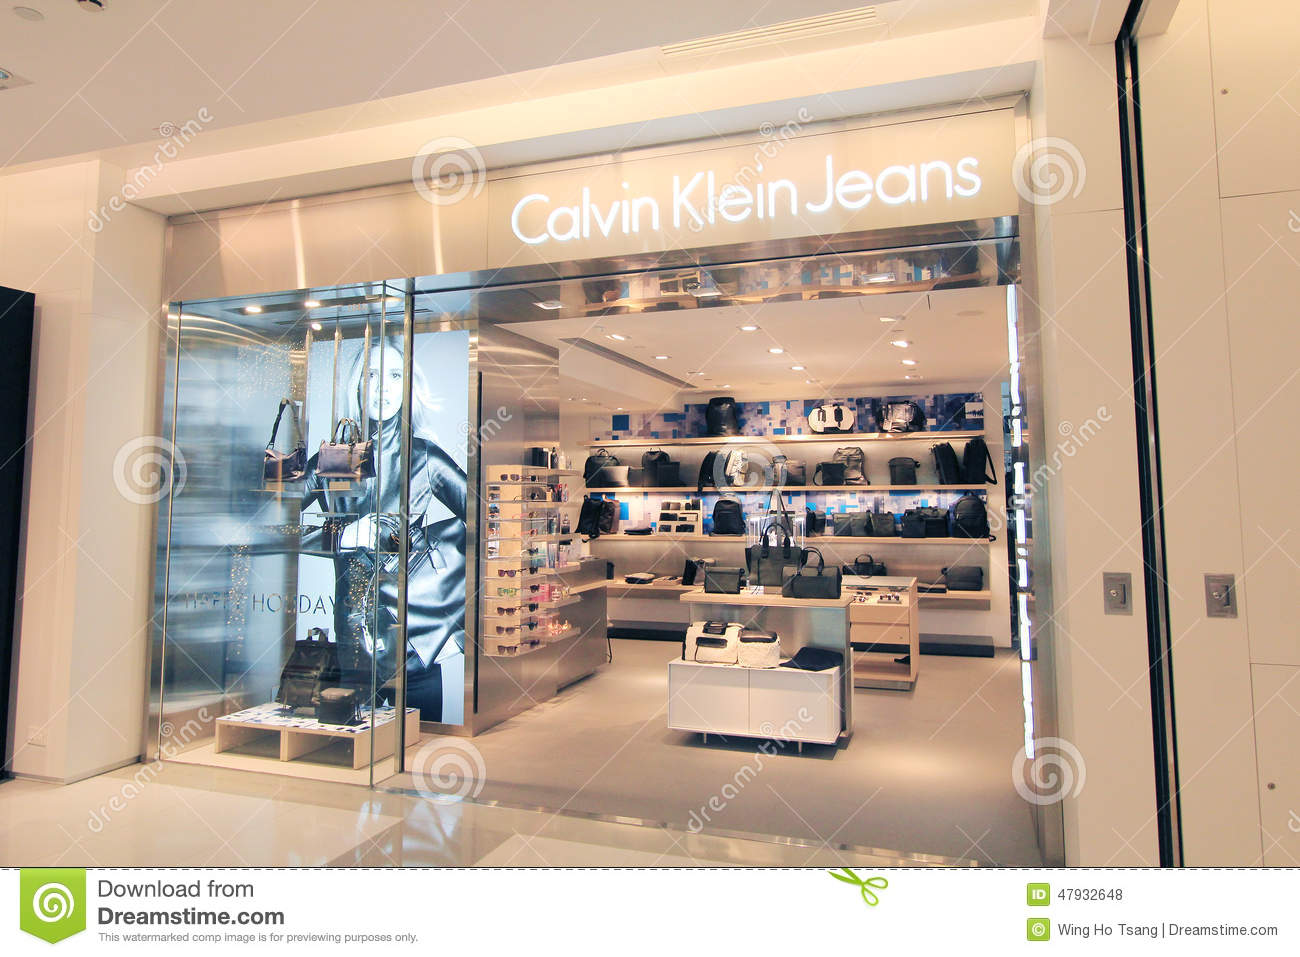 calvin klein jeans shop in hong kong editorial stock photo image 47932648. Black Bedroom Furniture Sets. Home Design Ideas